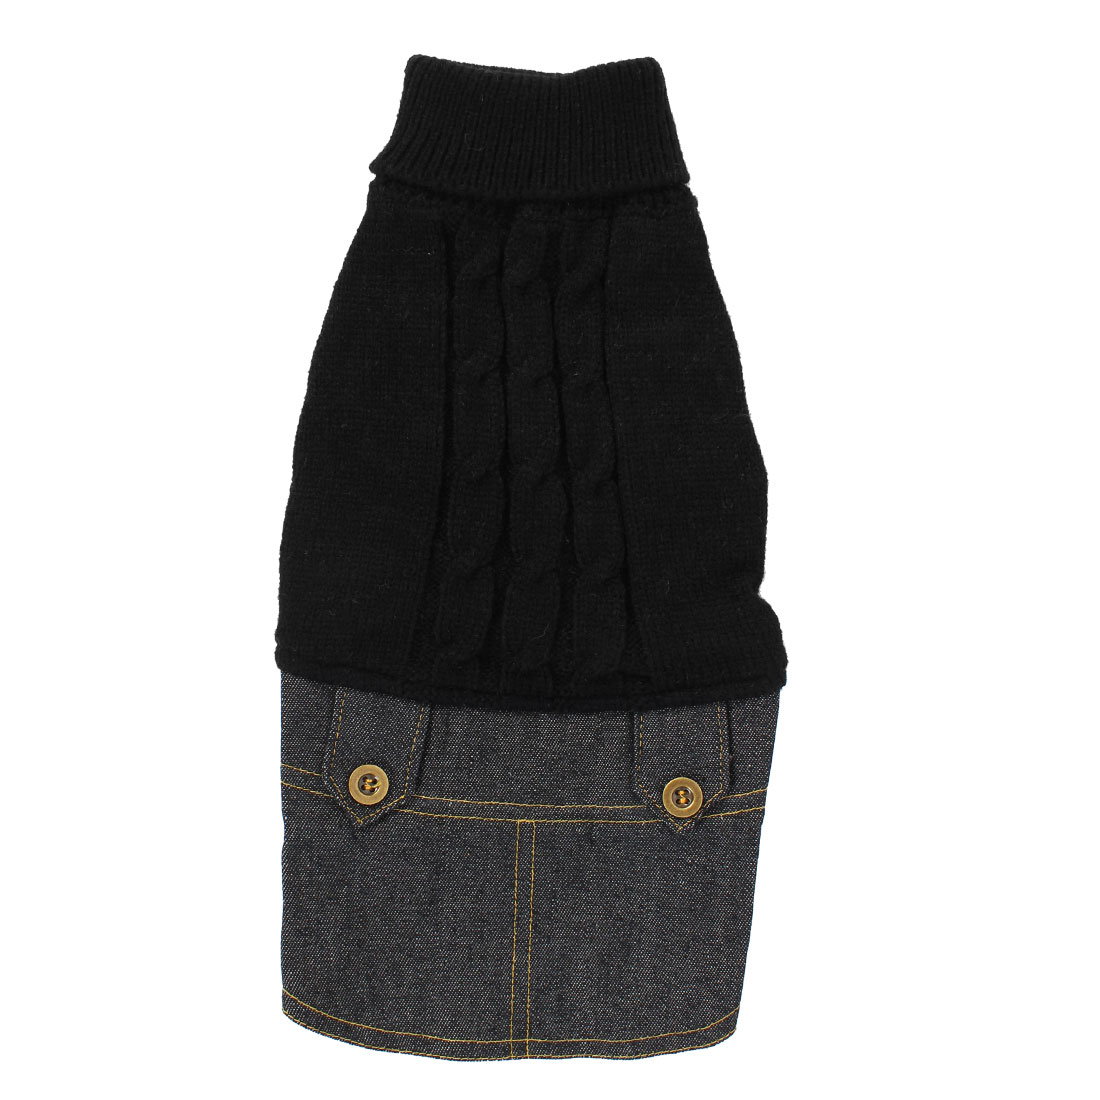 Pet Dog Winter Warm Sweater Denim Dress Jeans Skirt Clothes Apparel Black S